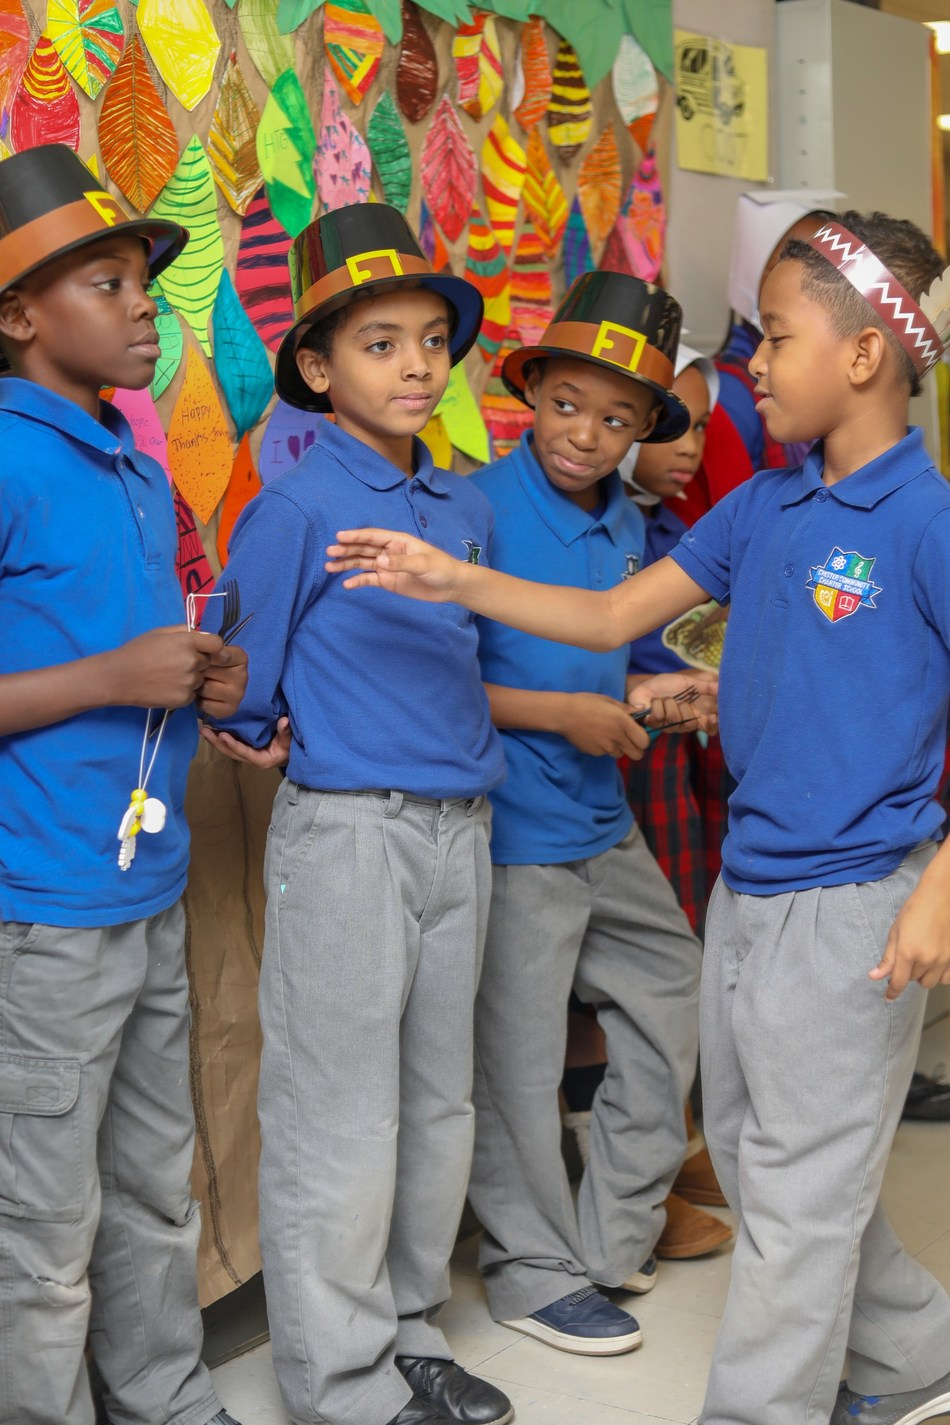 CCCS students in Thanksgiving Play dressed as Pilgrims and Indians